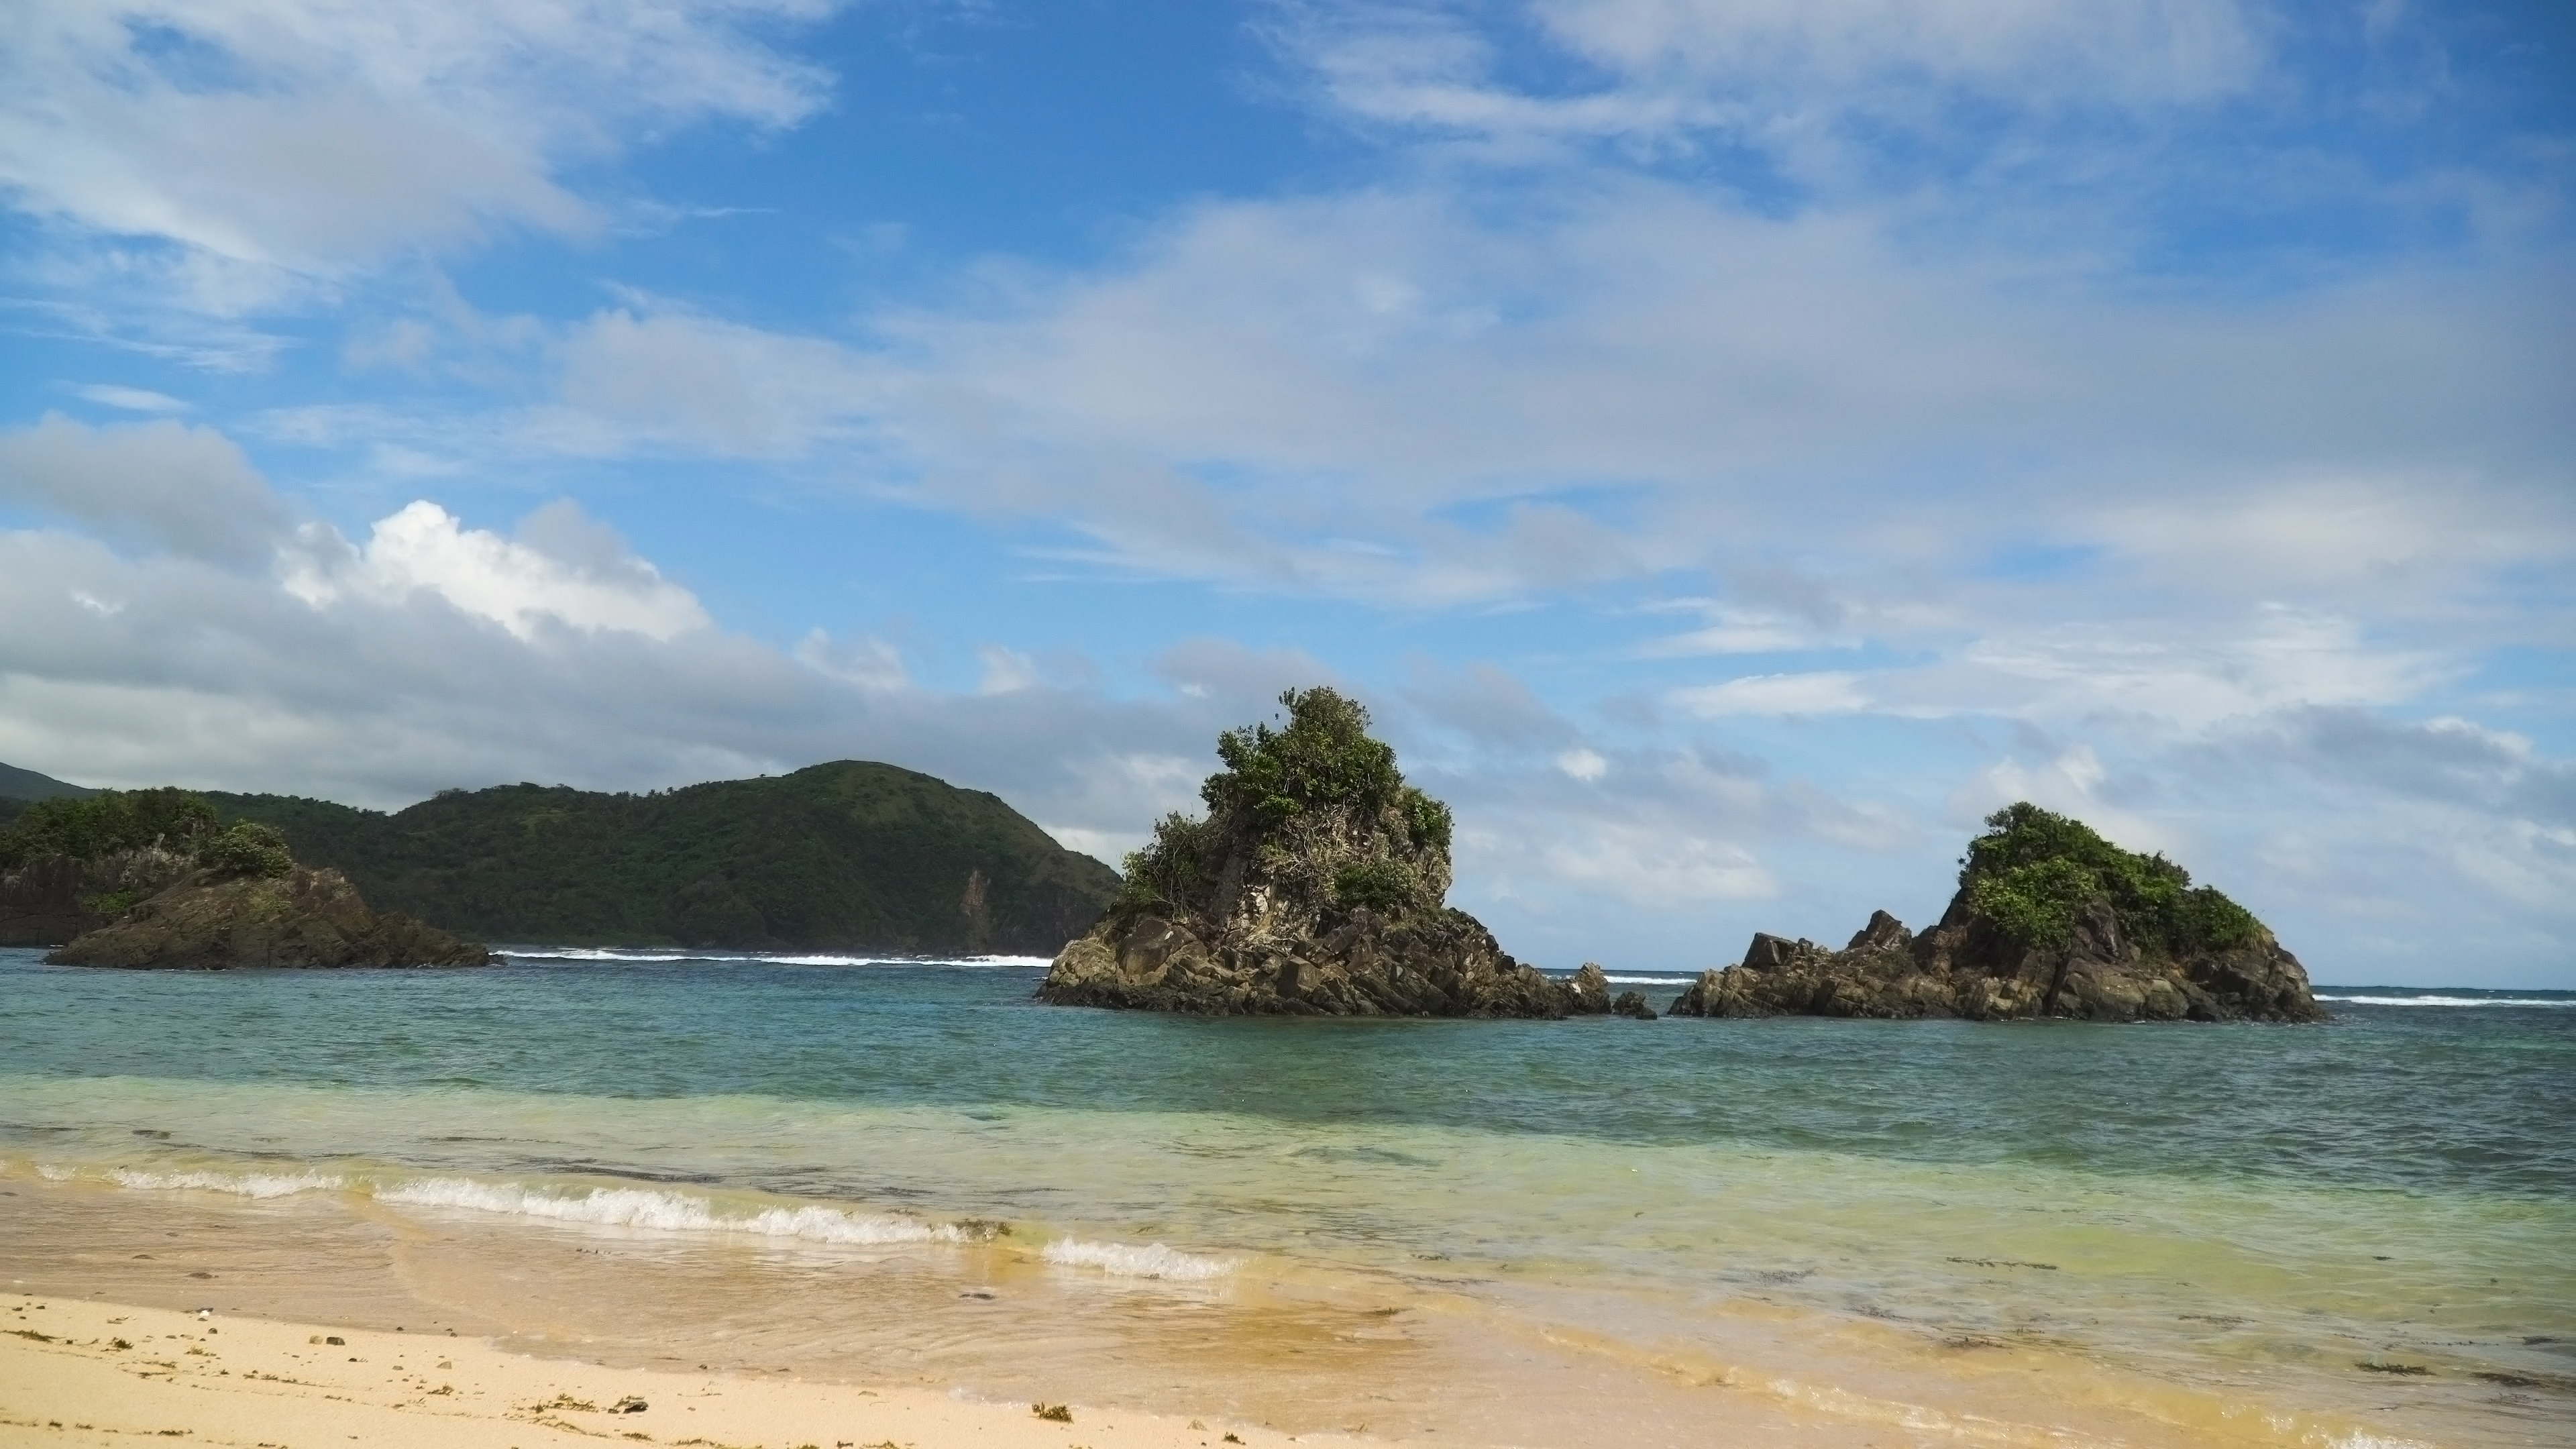 Twin Rocks beach in Virac Catanduanes